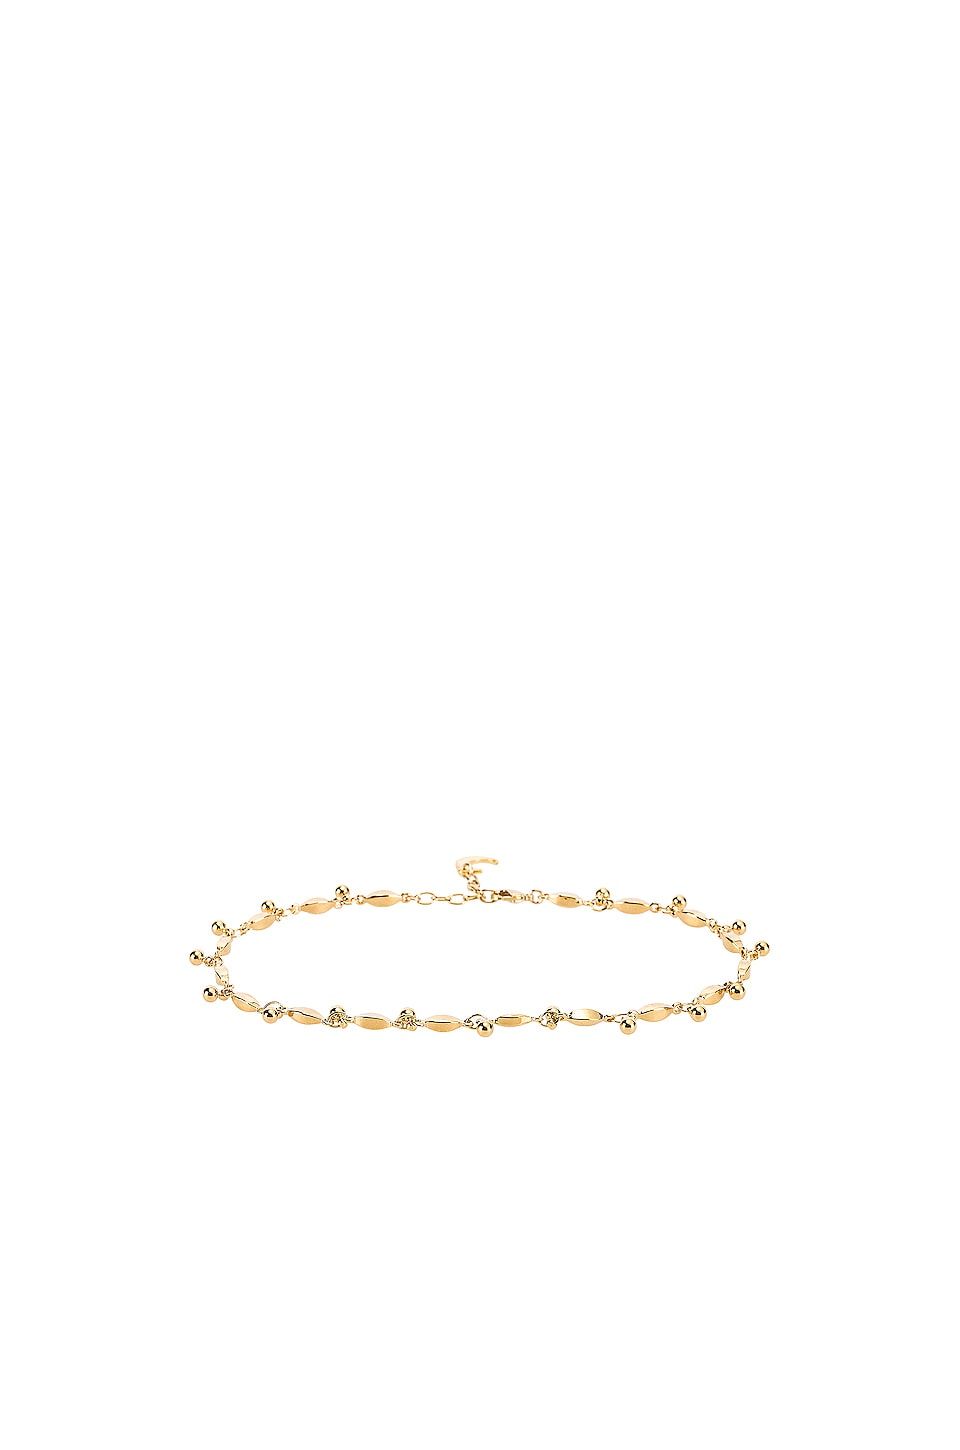 Lili Claspe Amaya Anklet in Gold